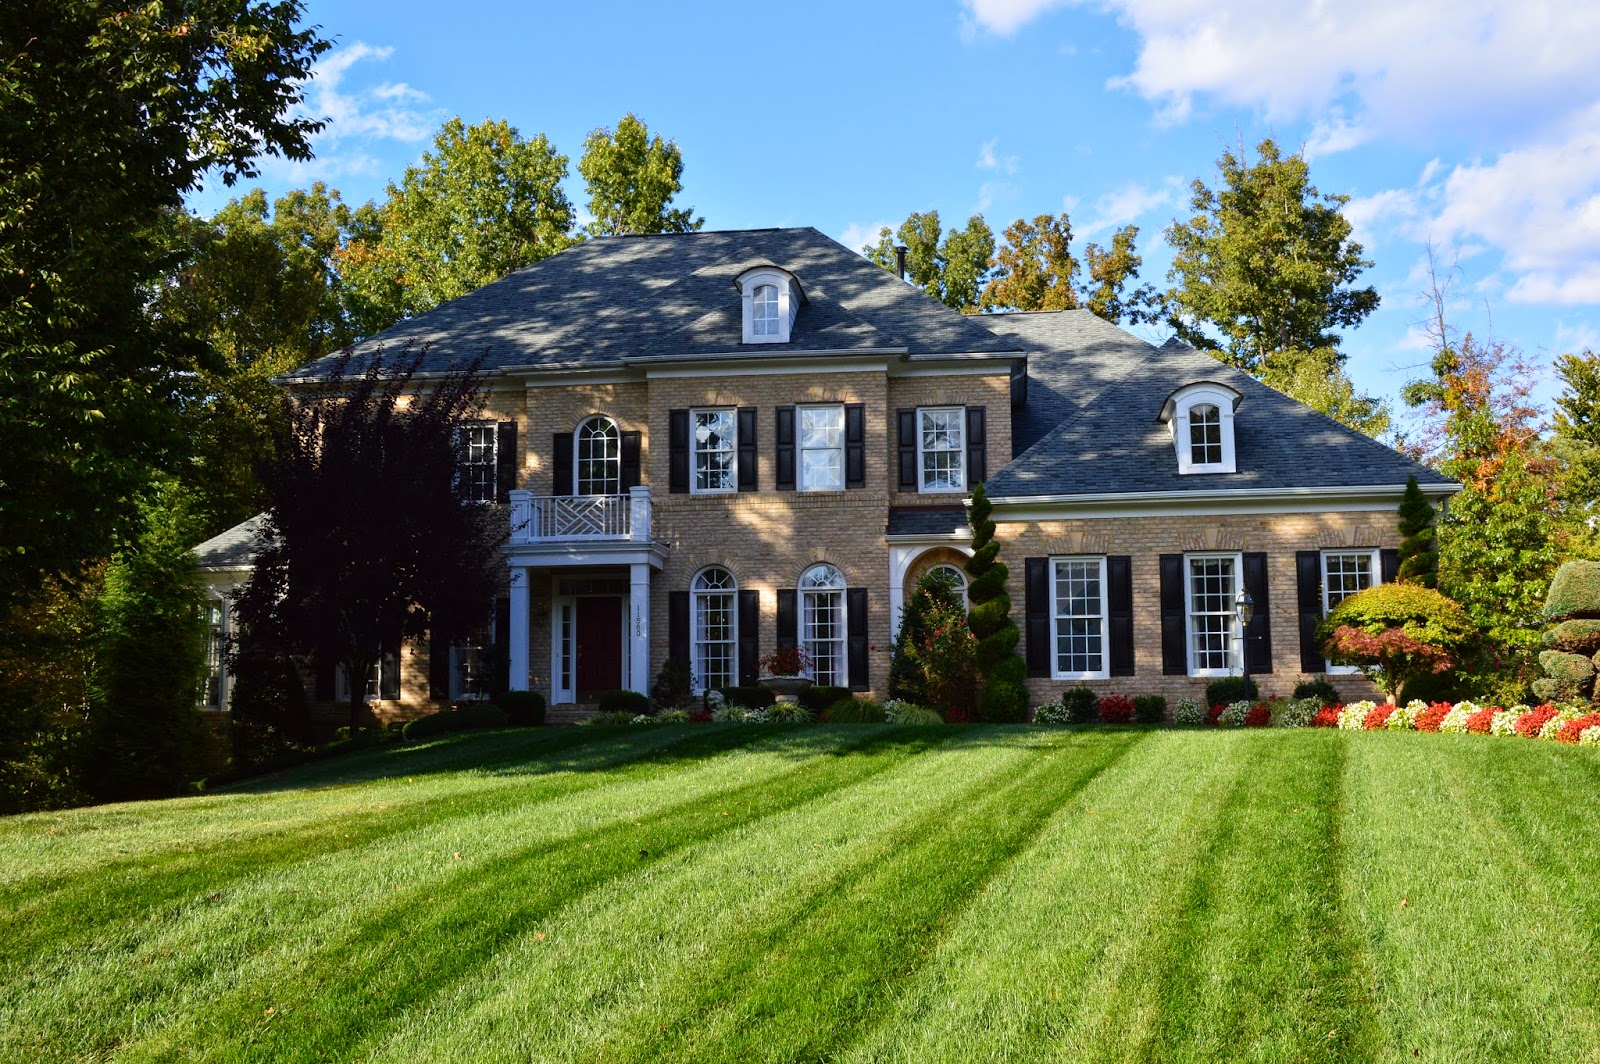 A Few Days Ago I Drove Around River Falls In Woodbridge VA And Took Some  Pictures Of Luxury Homes In Woodbridge VA. River Falls Is A Beautiful Golf  Course ...